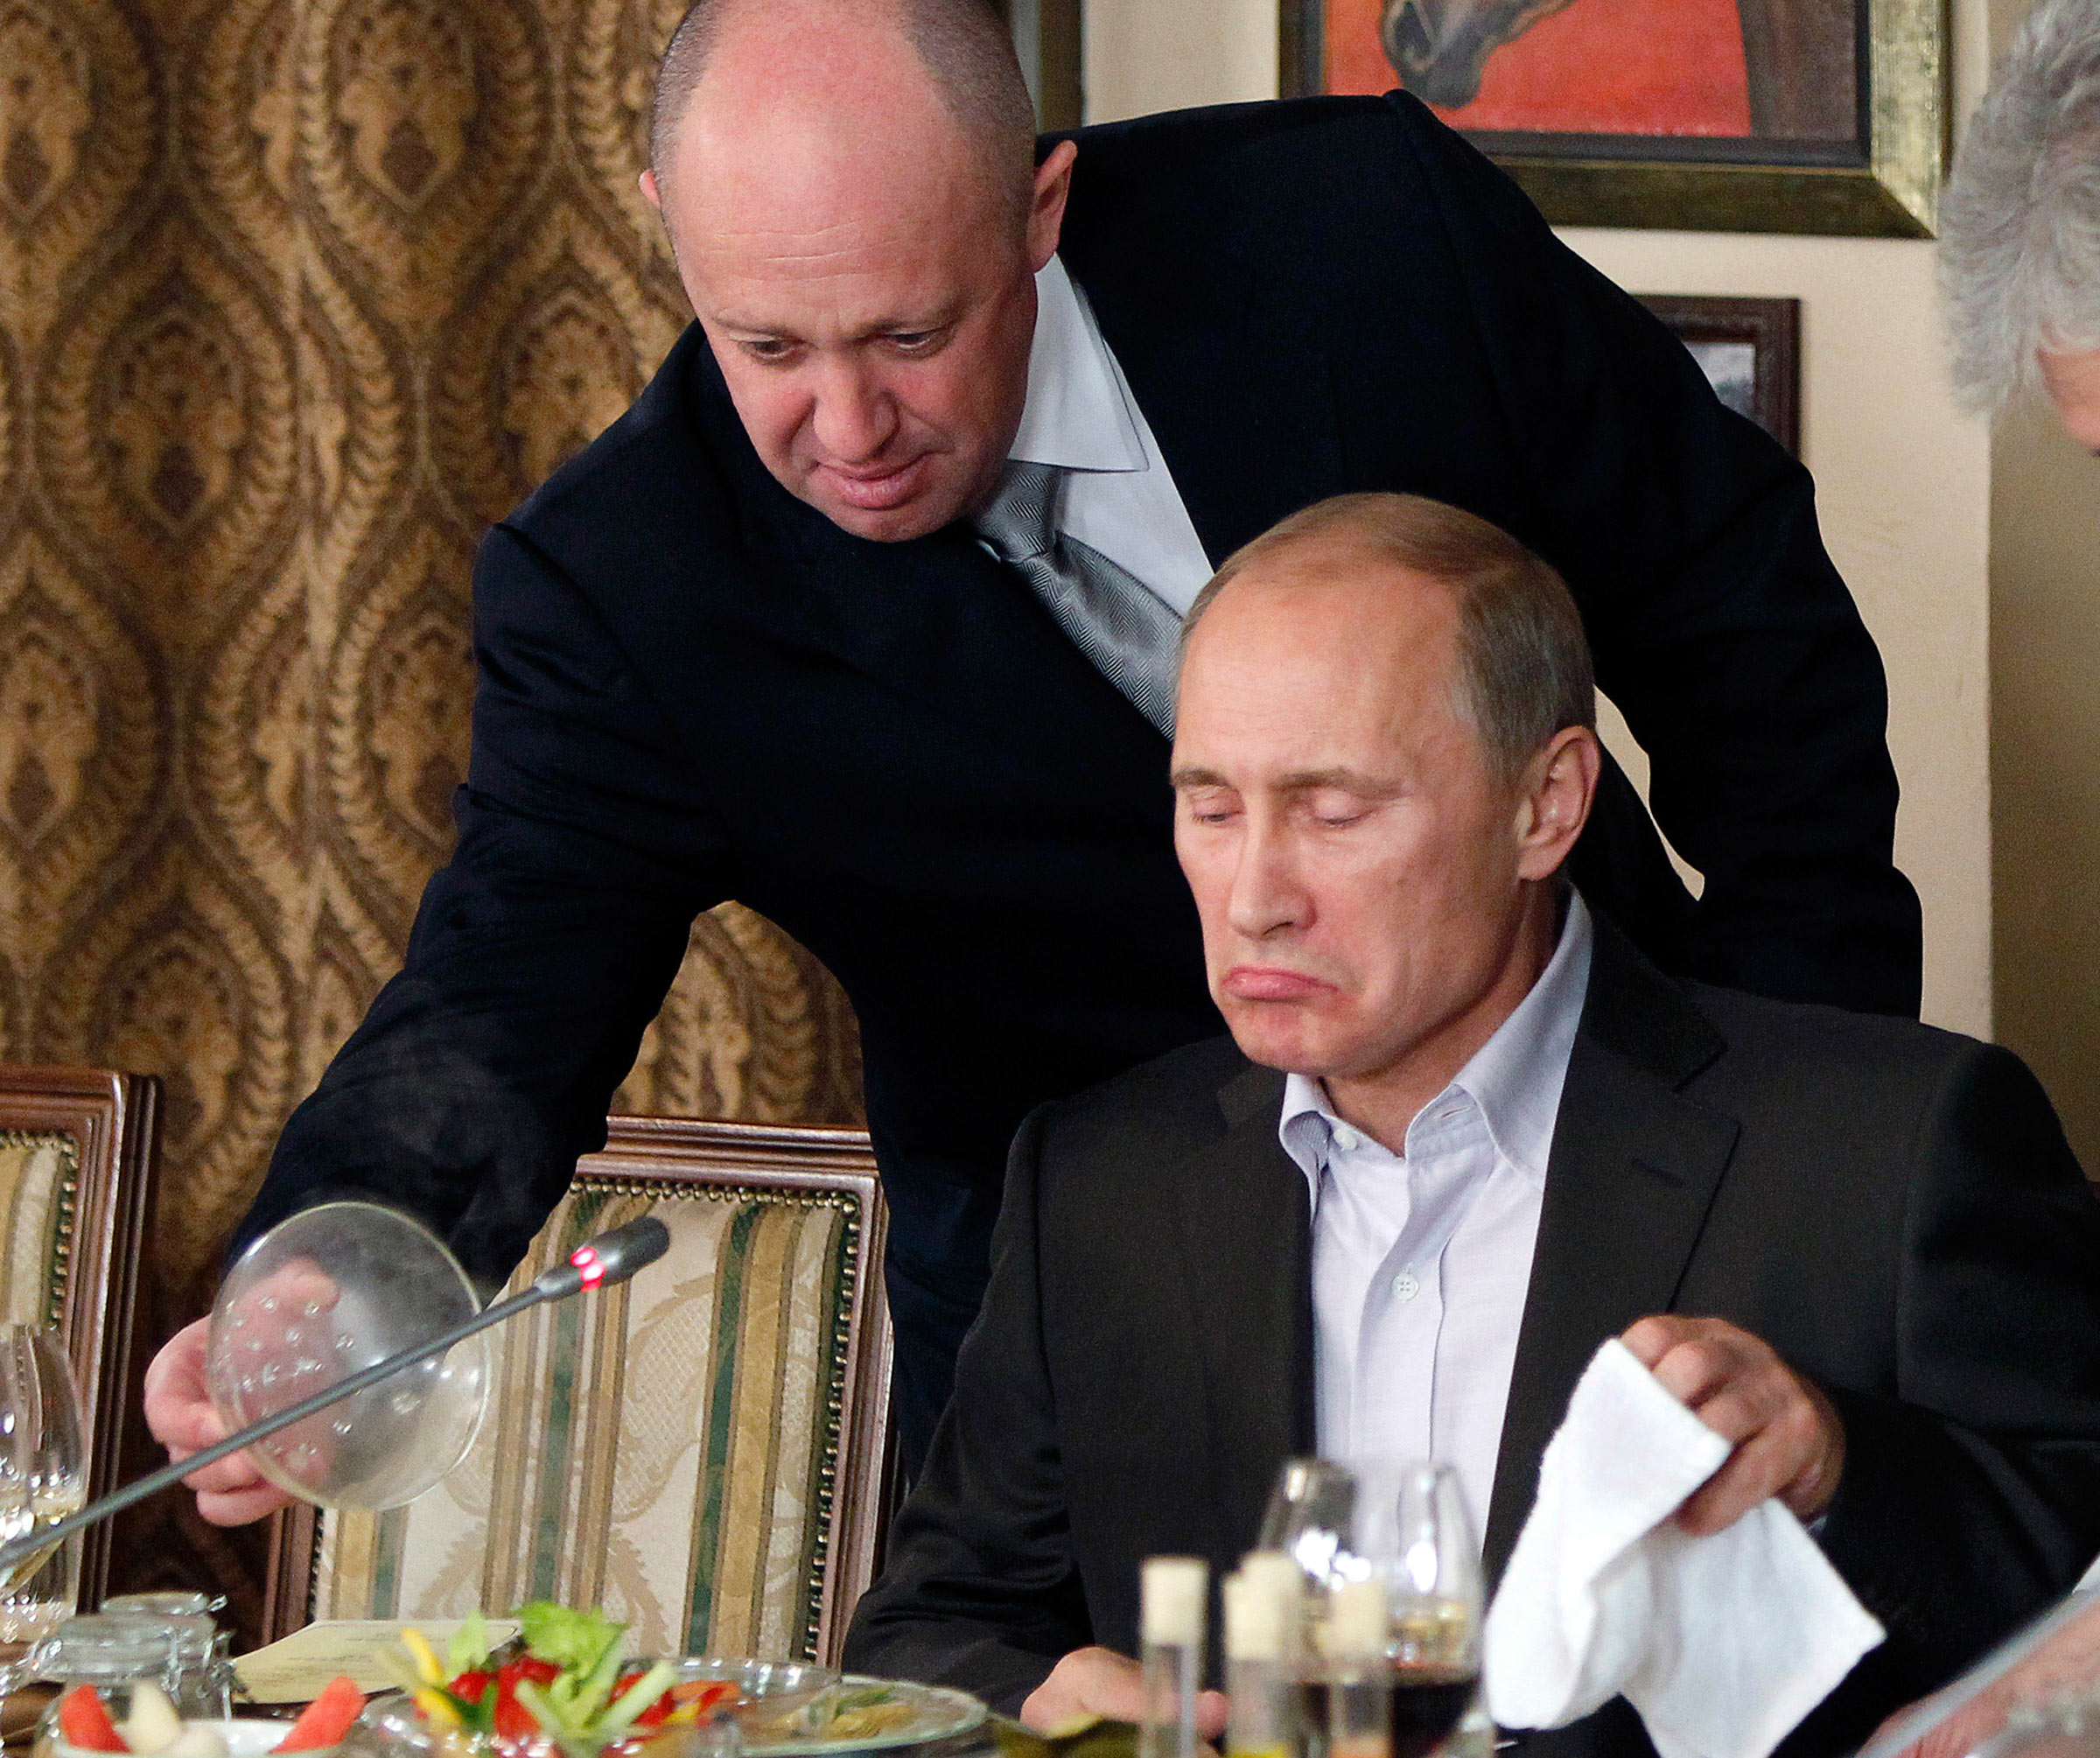 In this Nov. 11, 2011, file photo, Yevgeny Prigozhin, left, serves food to then-Russian Prime Minister Vladimir Putin at Prigozhin's restaurant outside Moscow, Russia.